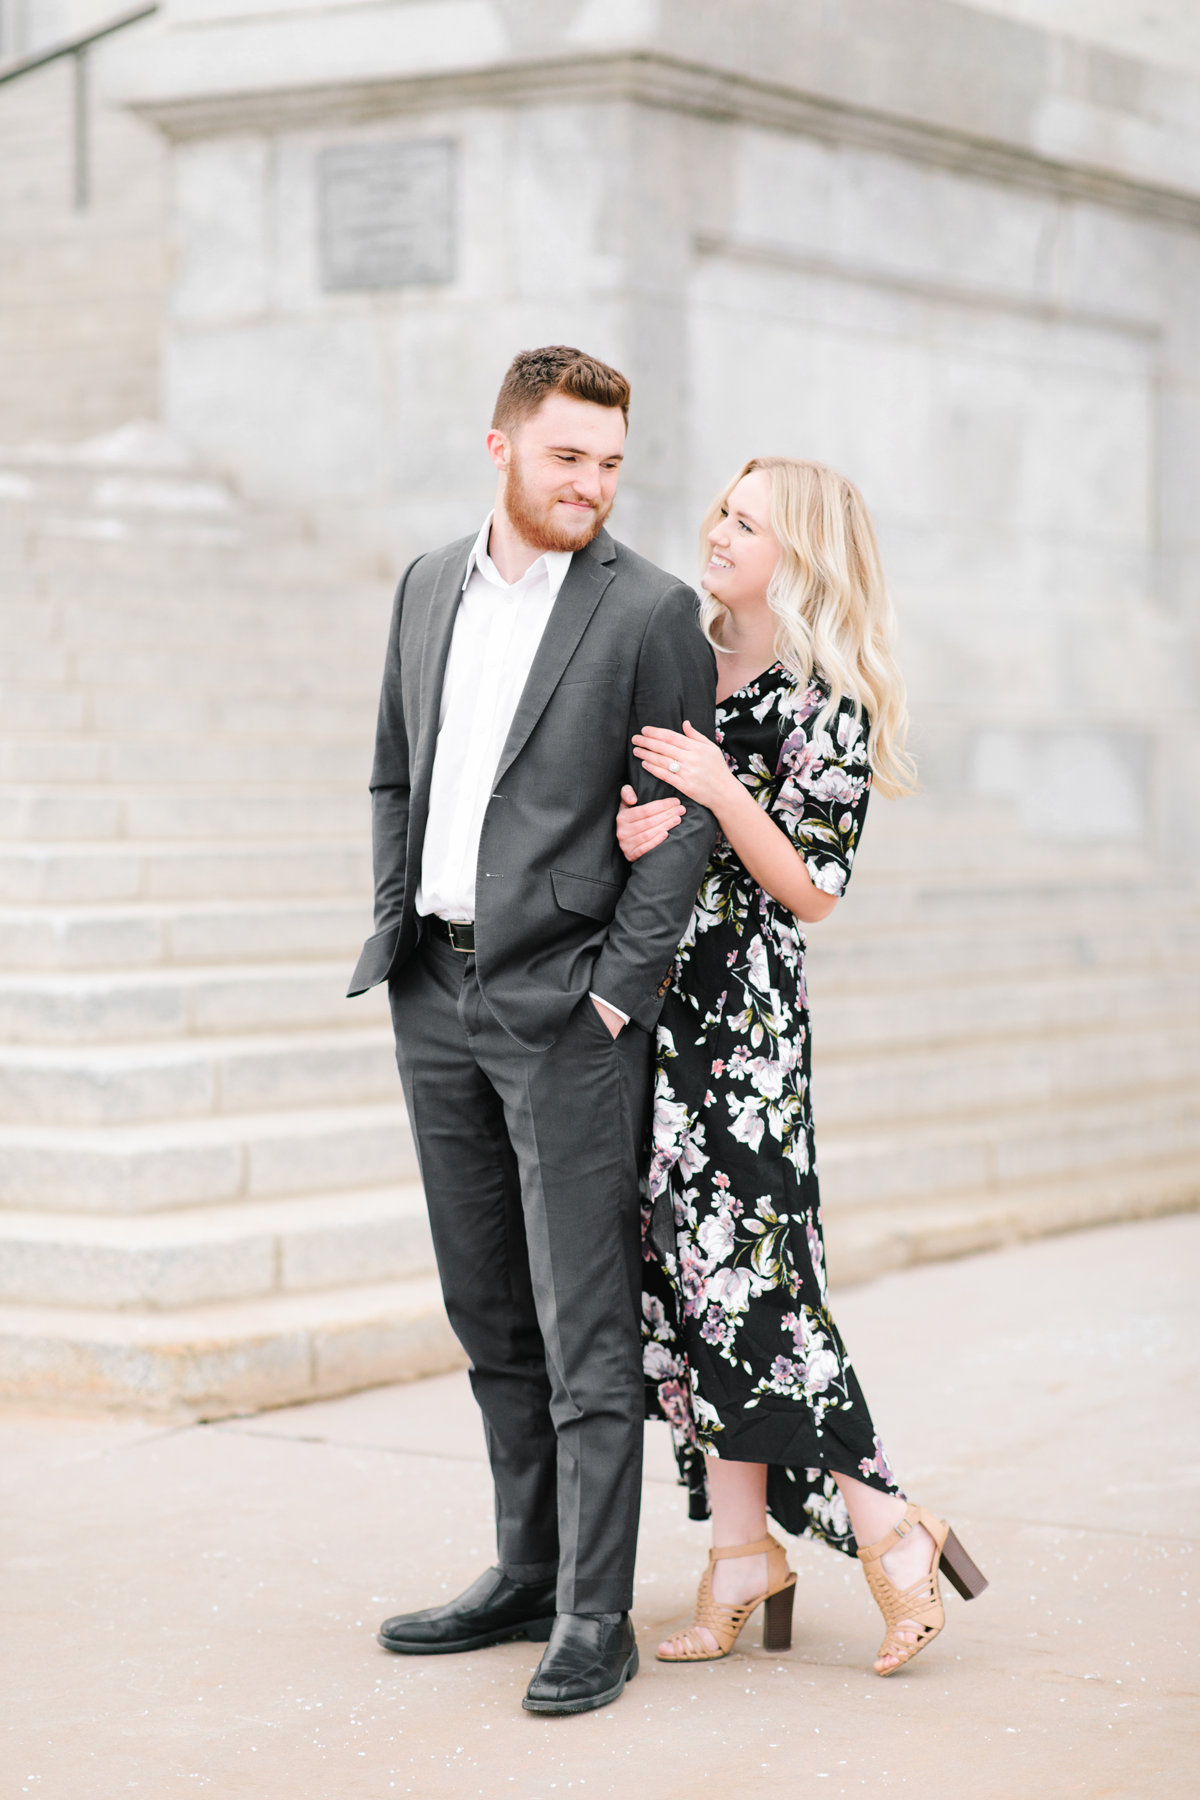 blonde loose curls hair inspiration fiance engagement session salt lake city capitol building linking arms heel pop staircase downtown urban photos utah valley wedding photographer #saltlakecitycapitolbuilding #engaged #utahvalleyengagementphotography #saltlakecityengagementphotographer #isaidyes #weddinginspo #engagementphotos #utah ##outfitinspo #fiance